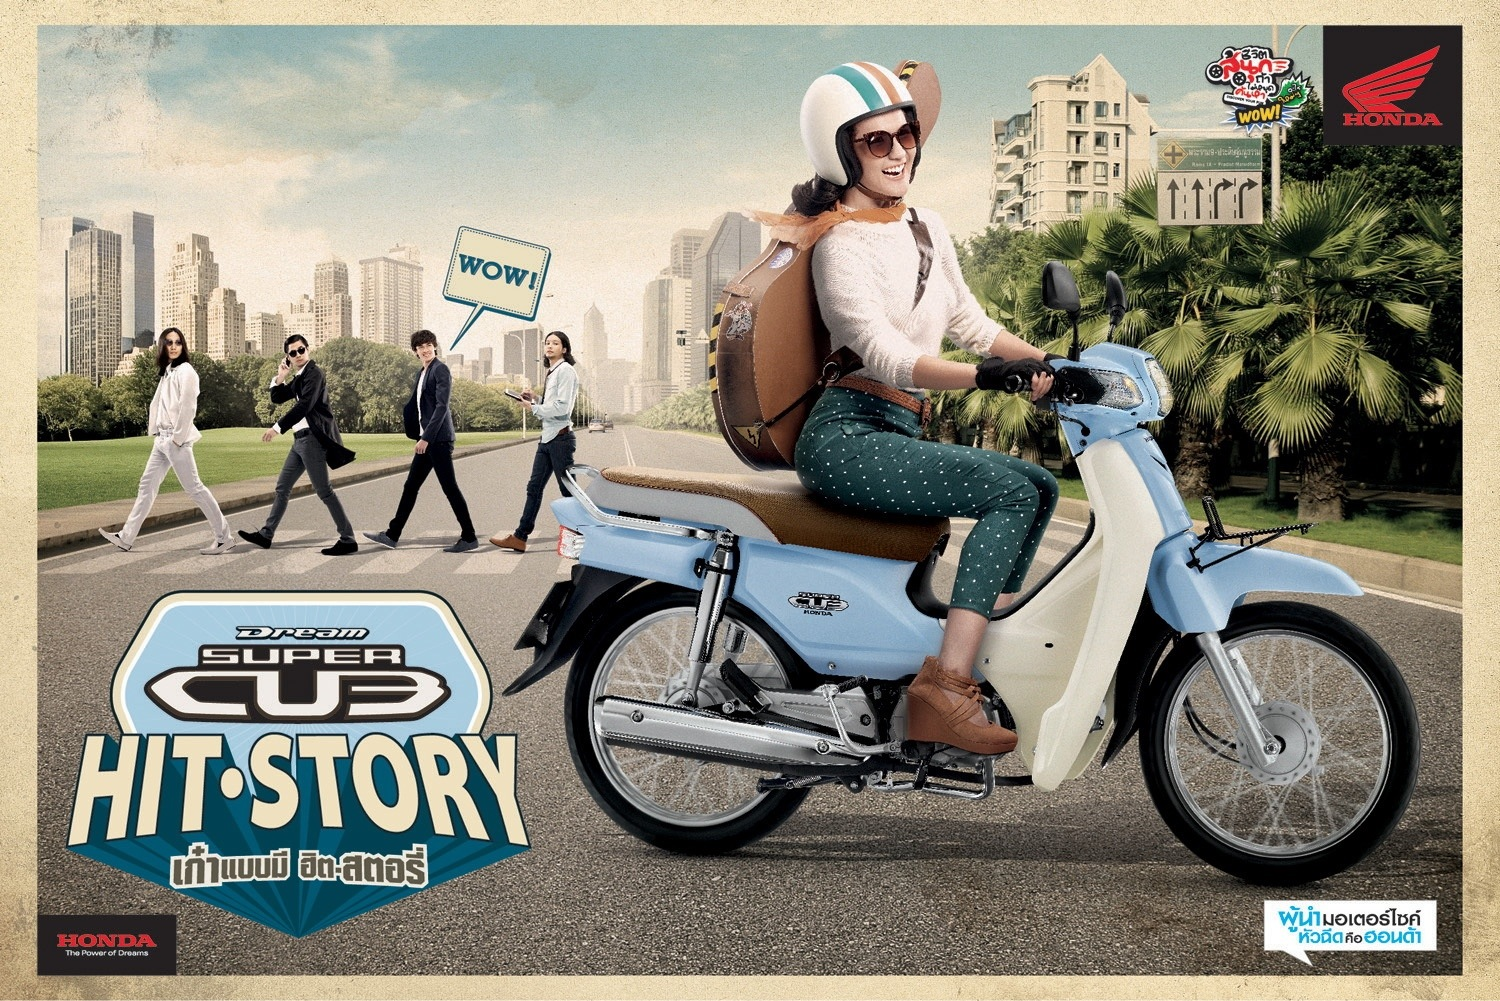 """Honda Acts Cool under """"Hit-Story"""" Concept Launches Super Cup for Retro-Fashion Lovers   komarjohari"""